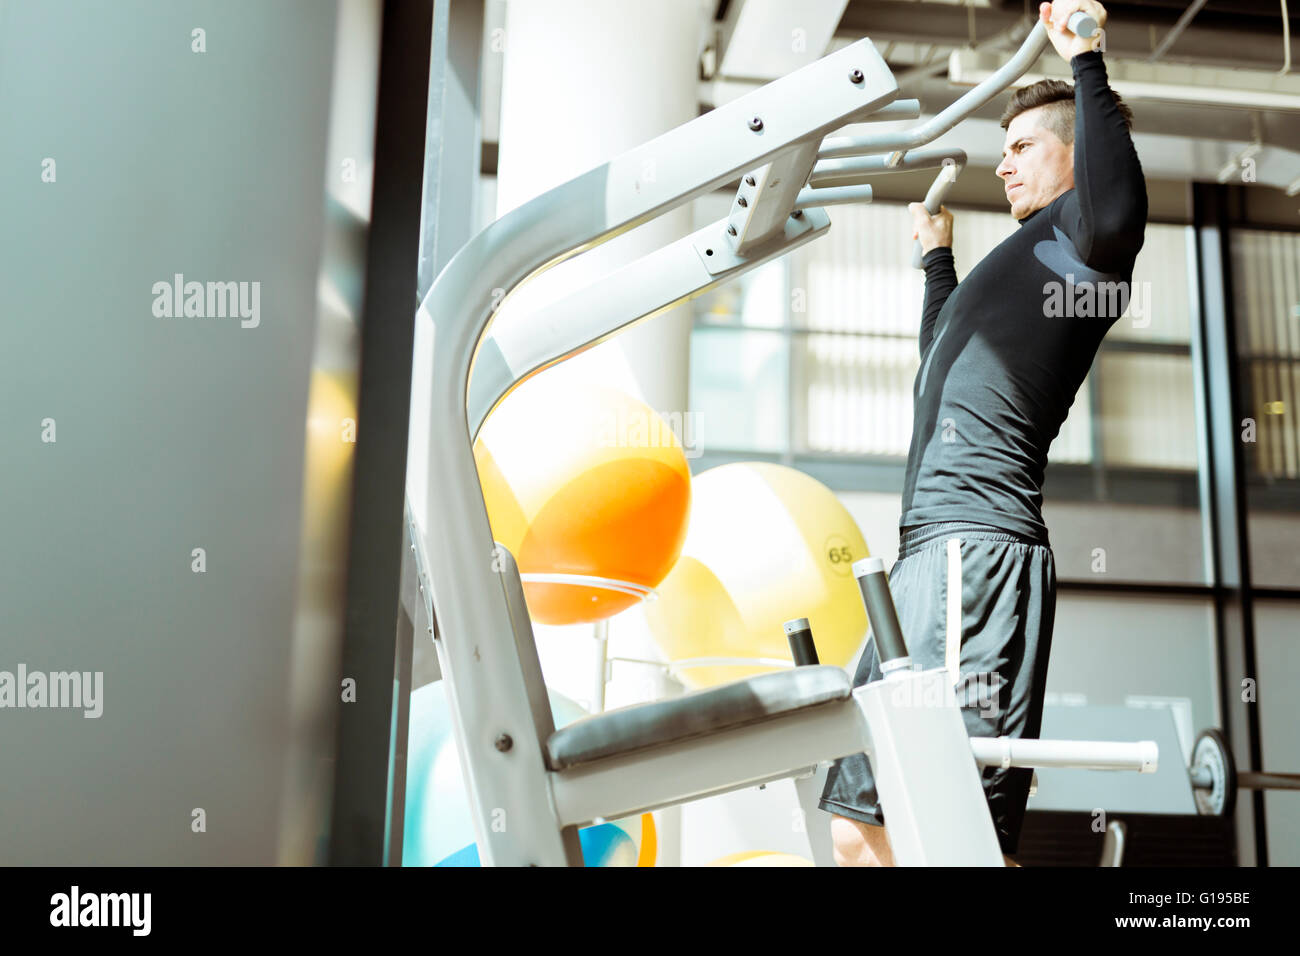 Young handsome man working out in a  gym and living a healthy lifestyle - Stock Image